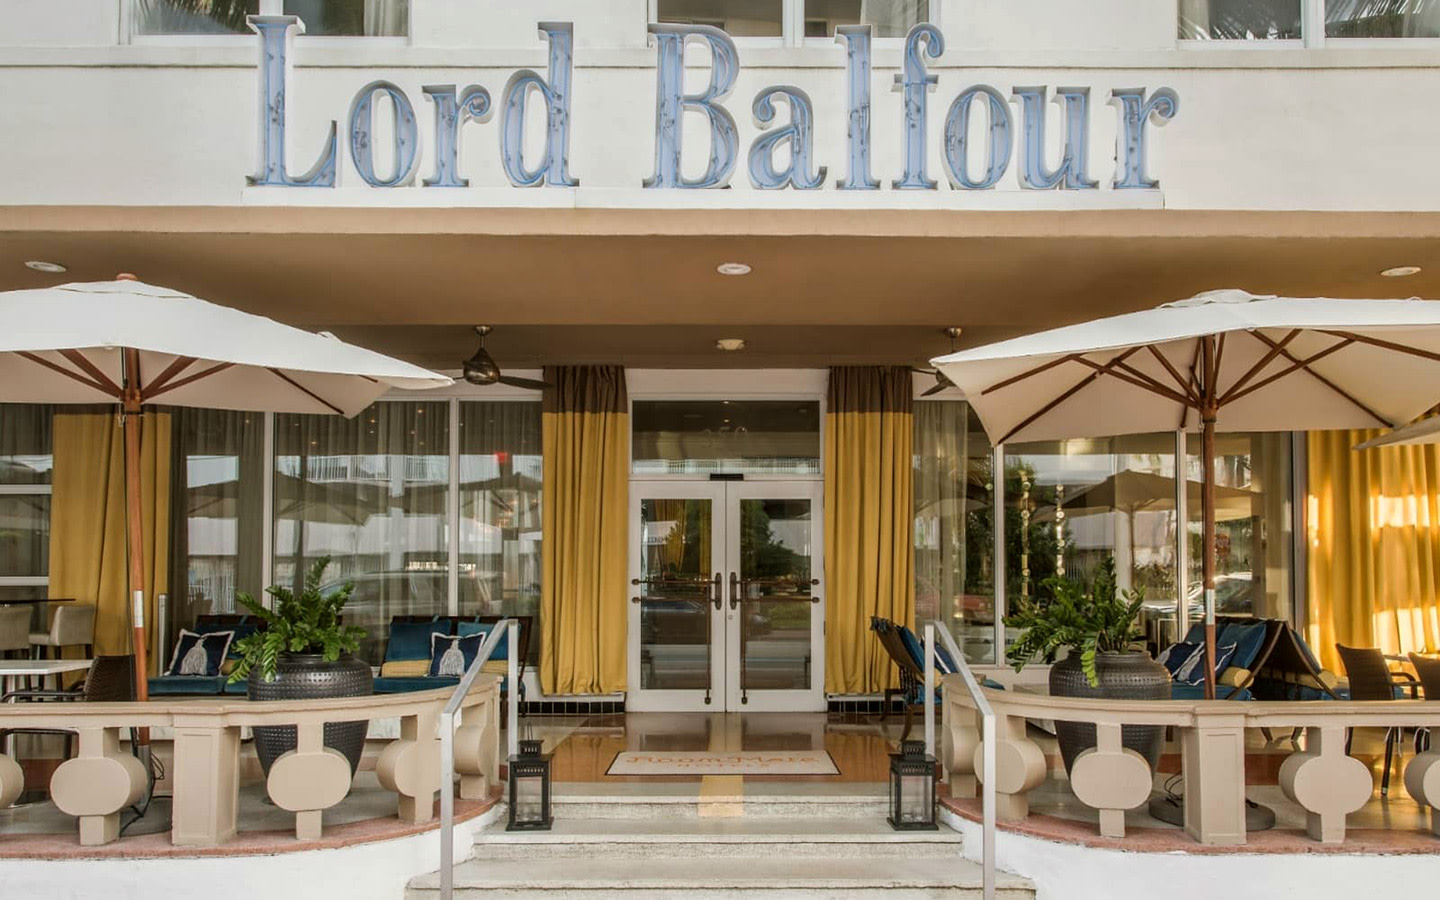 Room Mate Lord Balfour Hotel